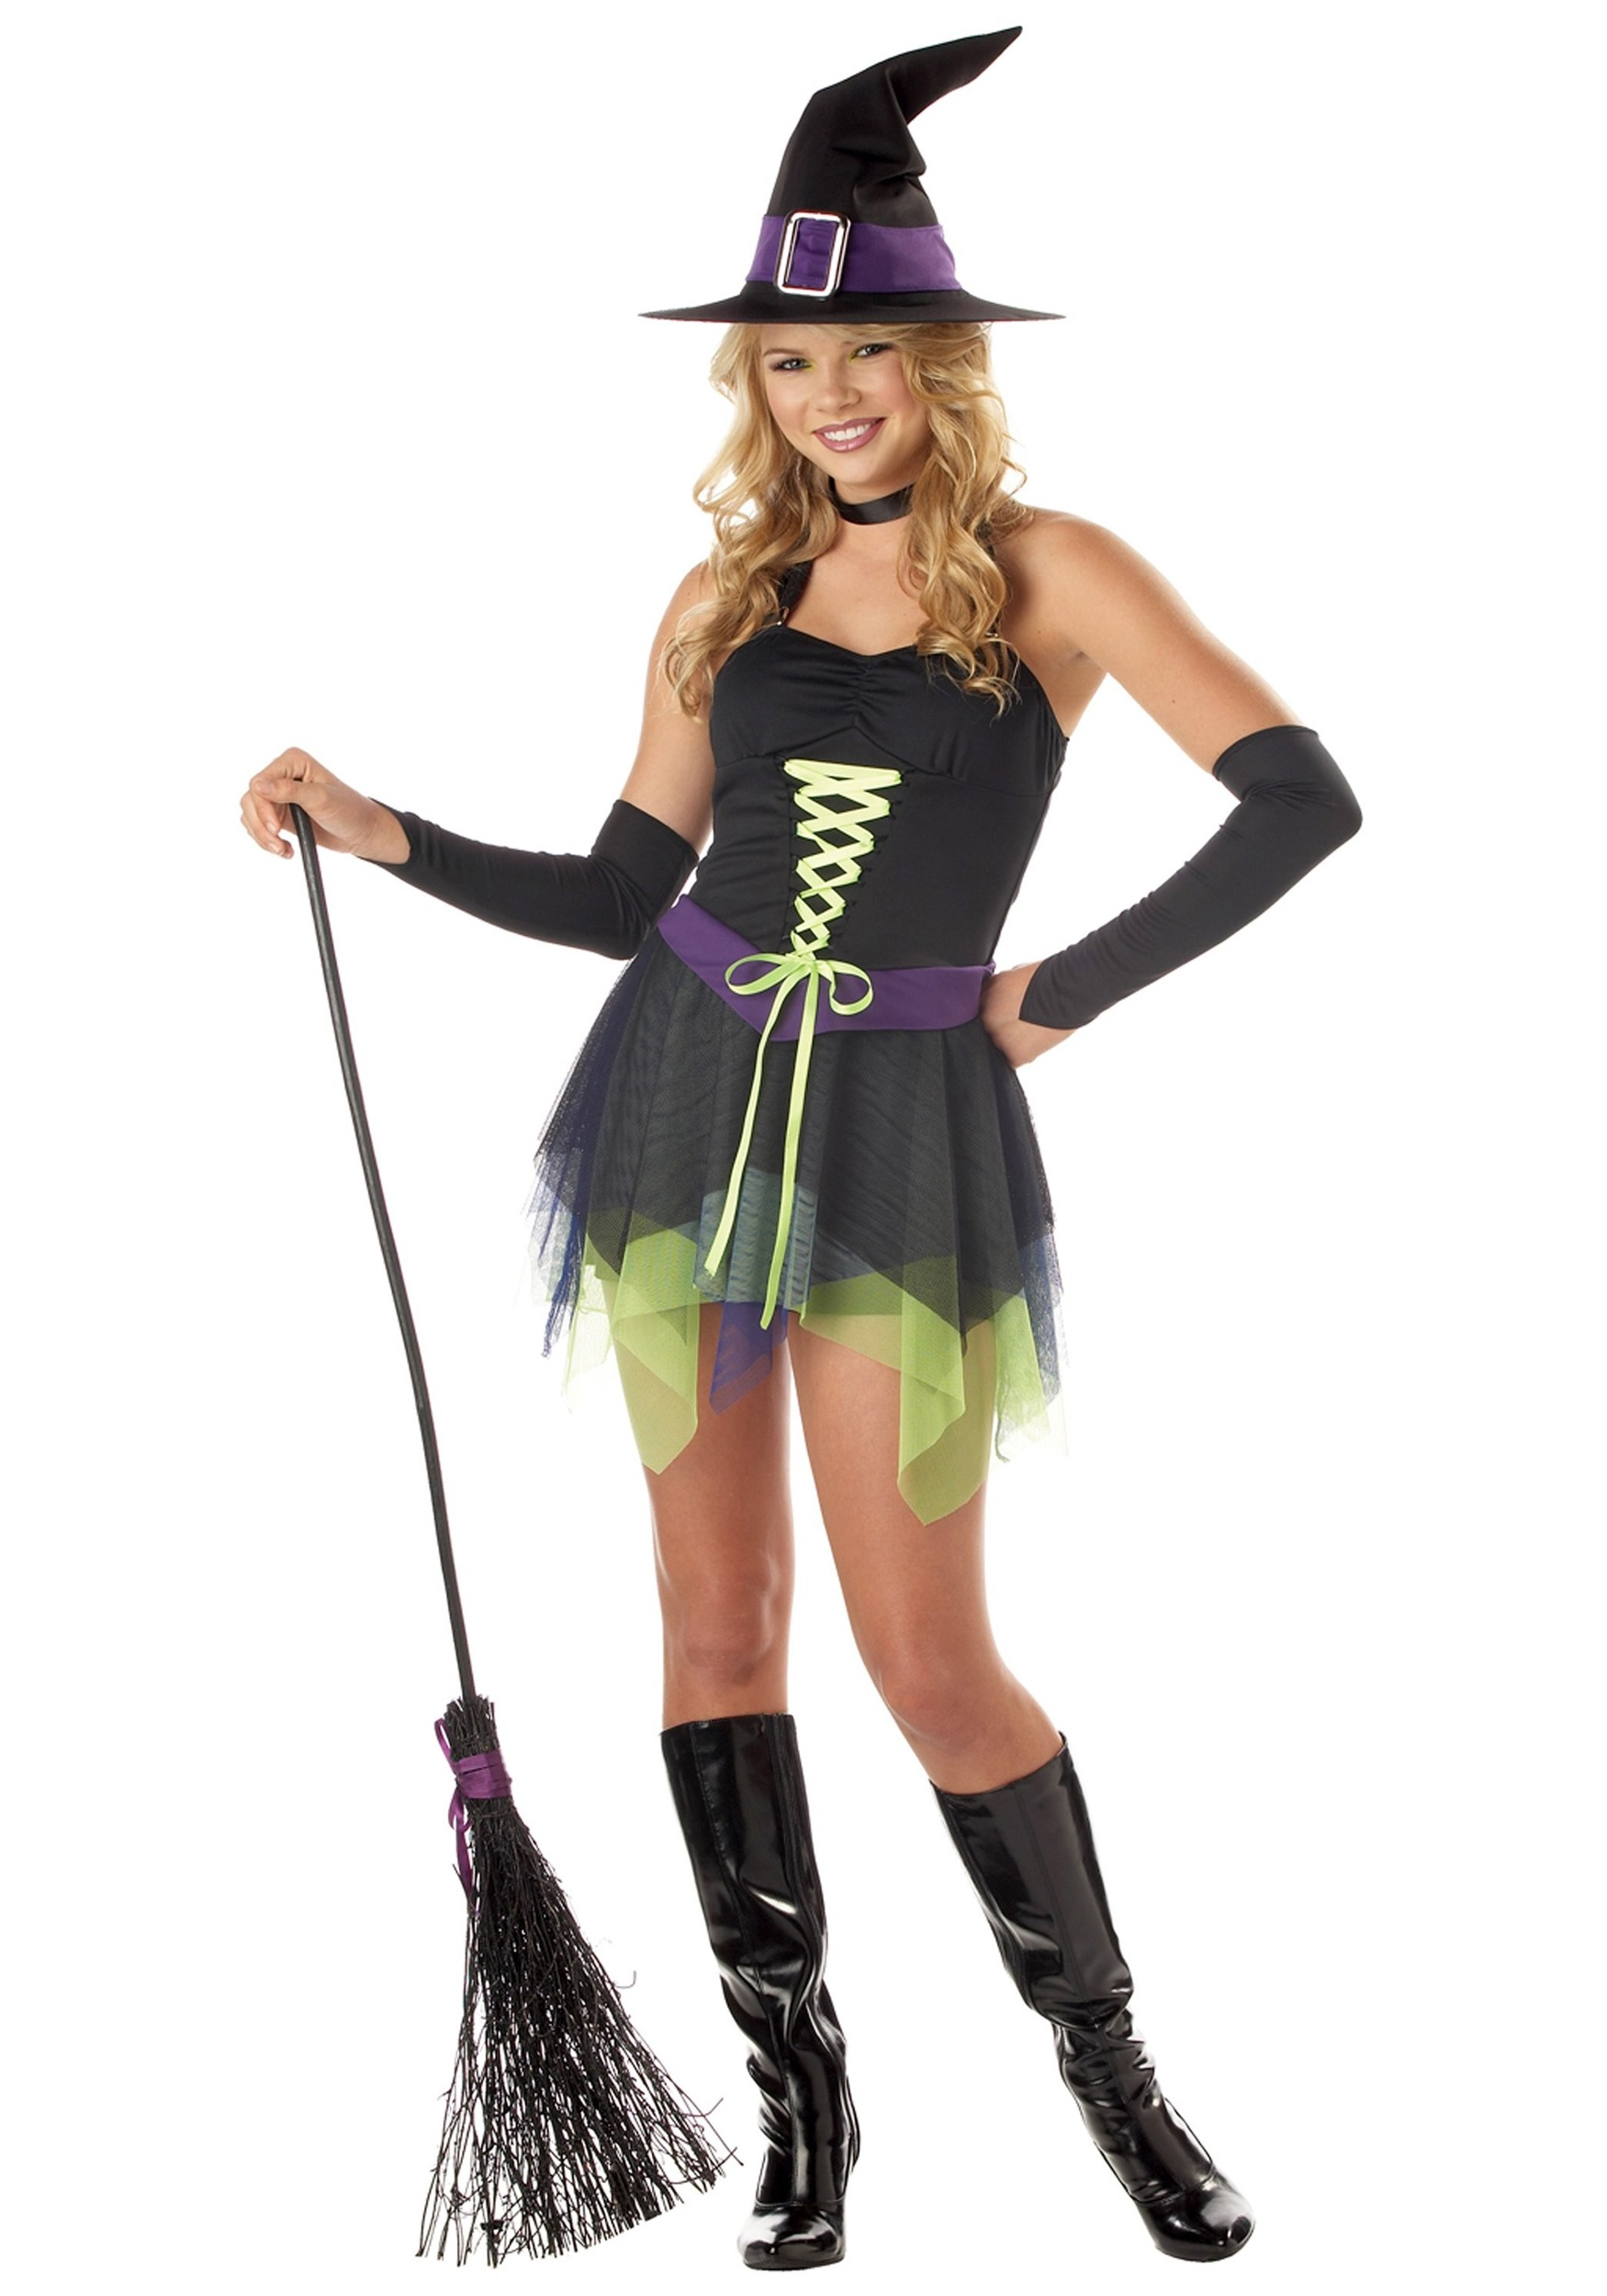 Teen Whimsical Witch Costume  sc 1 st  Halloween Costumes & Teen Whimsical Witch Costume - Halloween Costume Ideas 2016